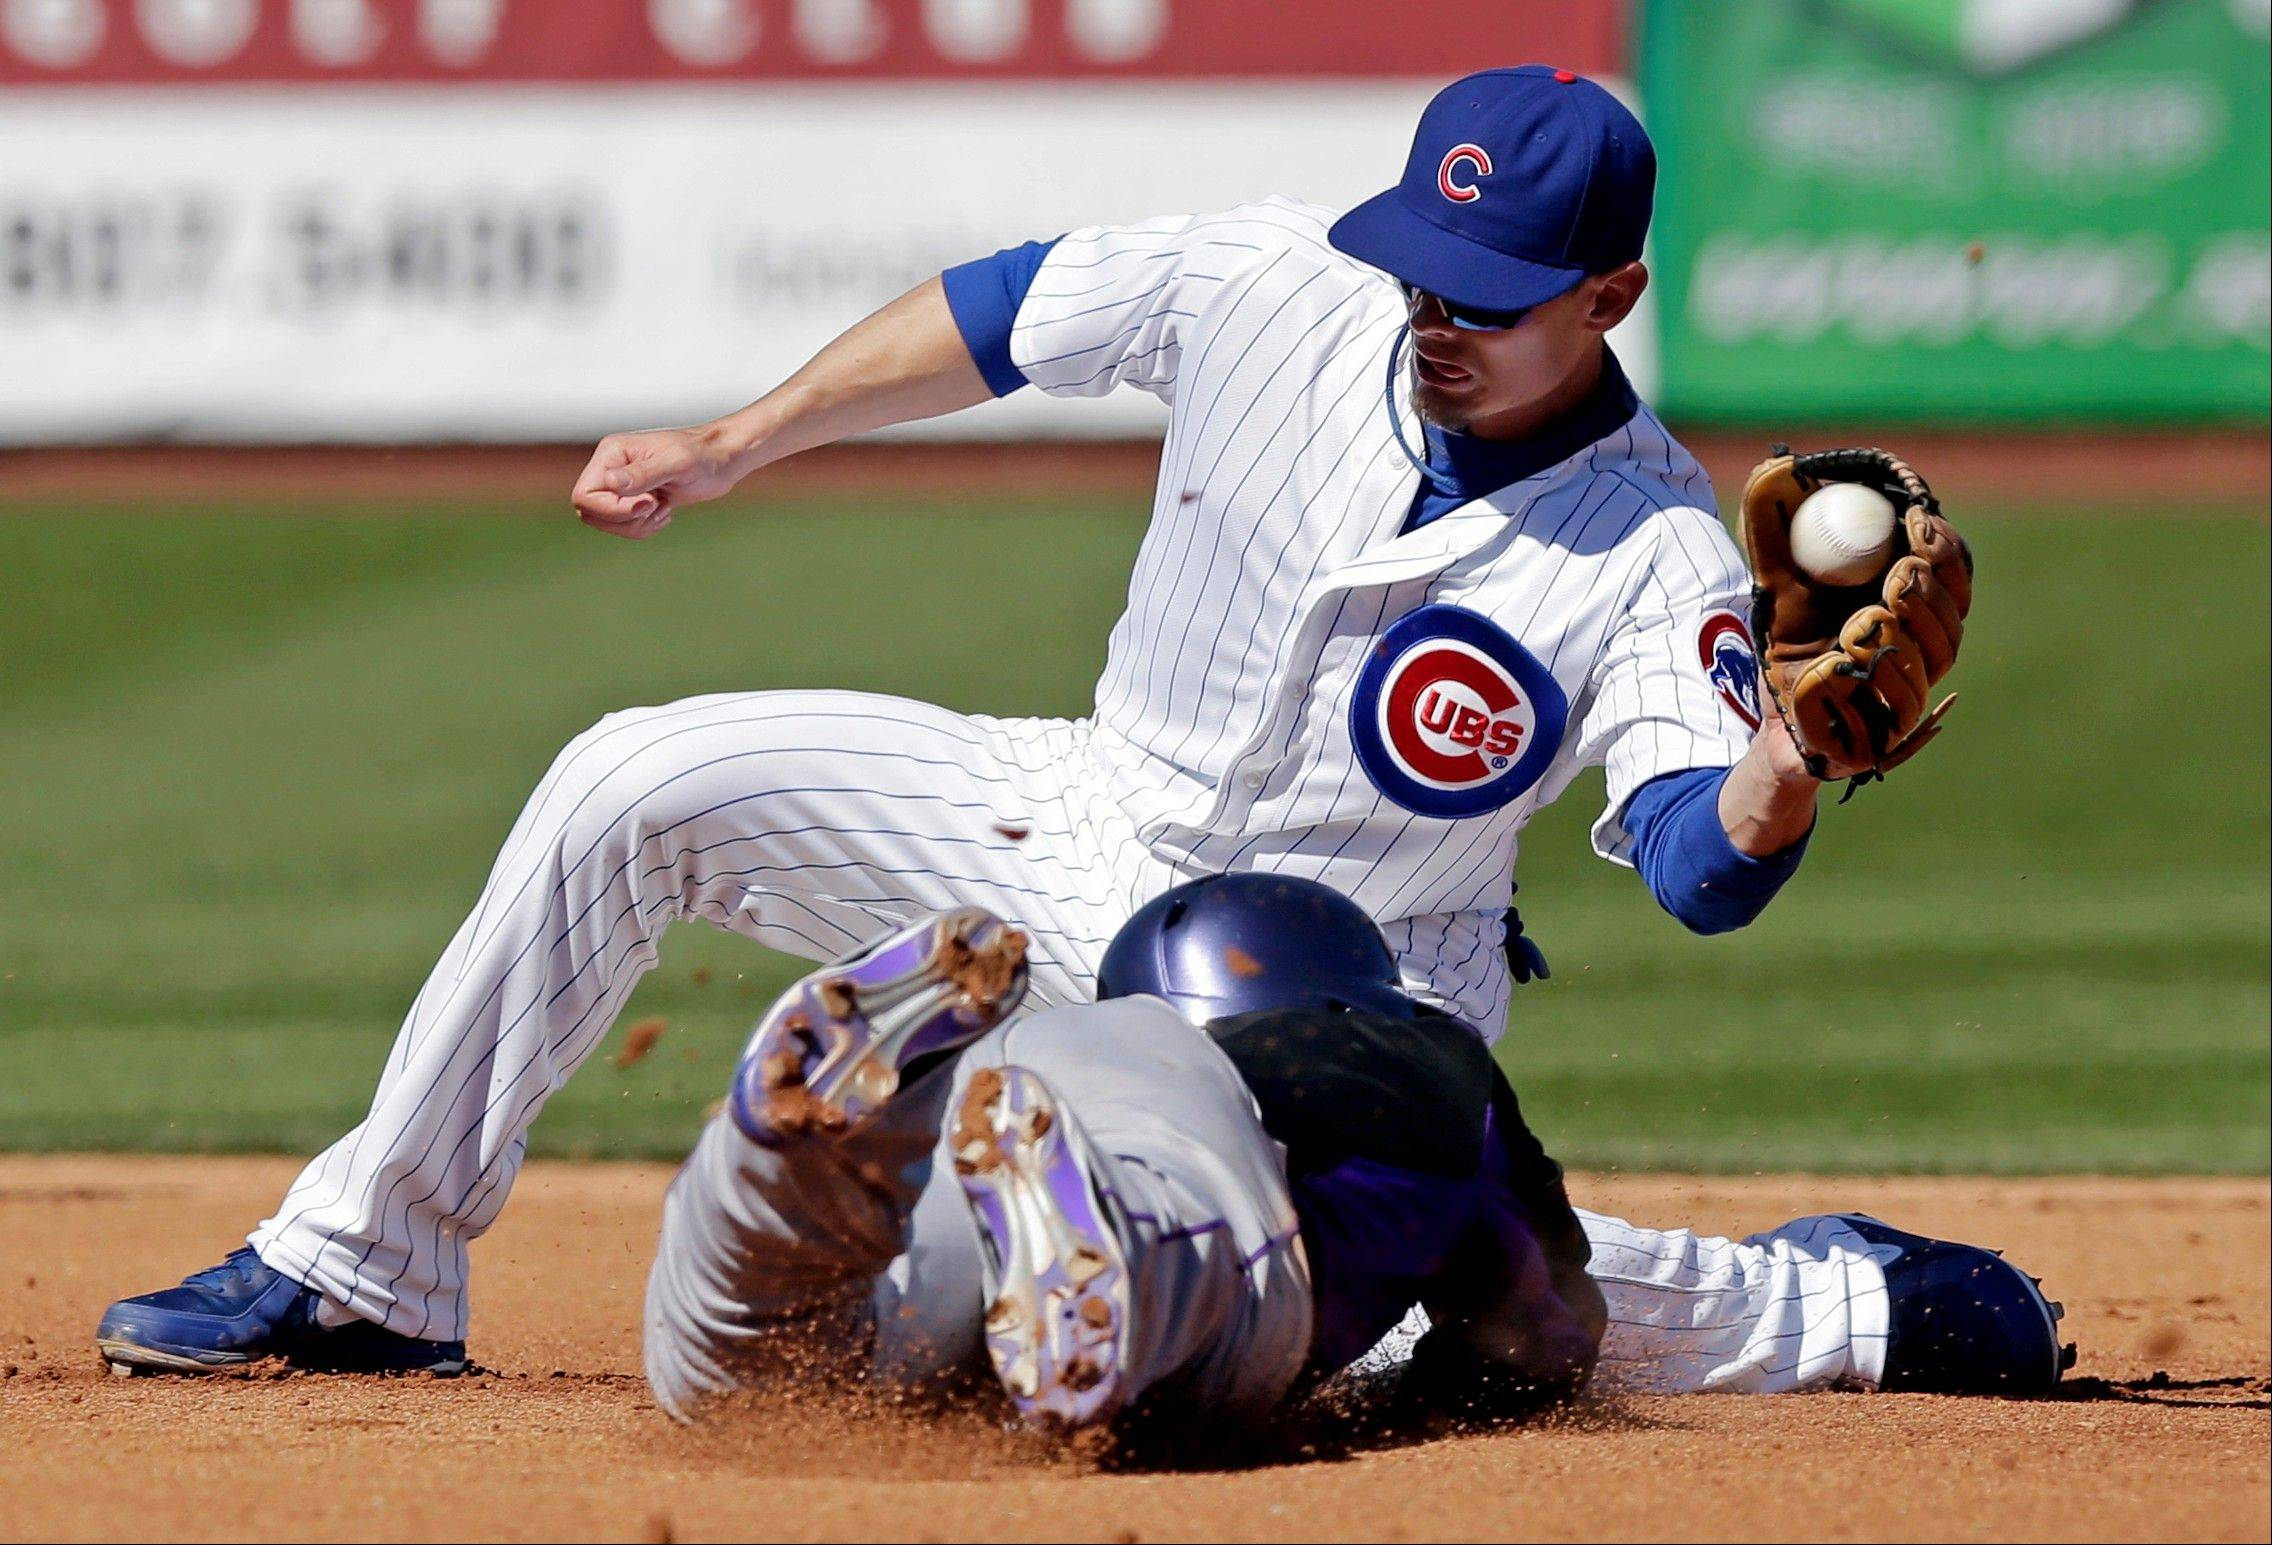 Brent Lillibridge not only made the Cubs as a nonroster player out of spring training, he will start at second base Monday in Pittsburgh.